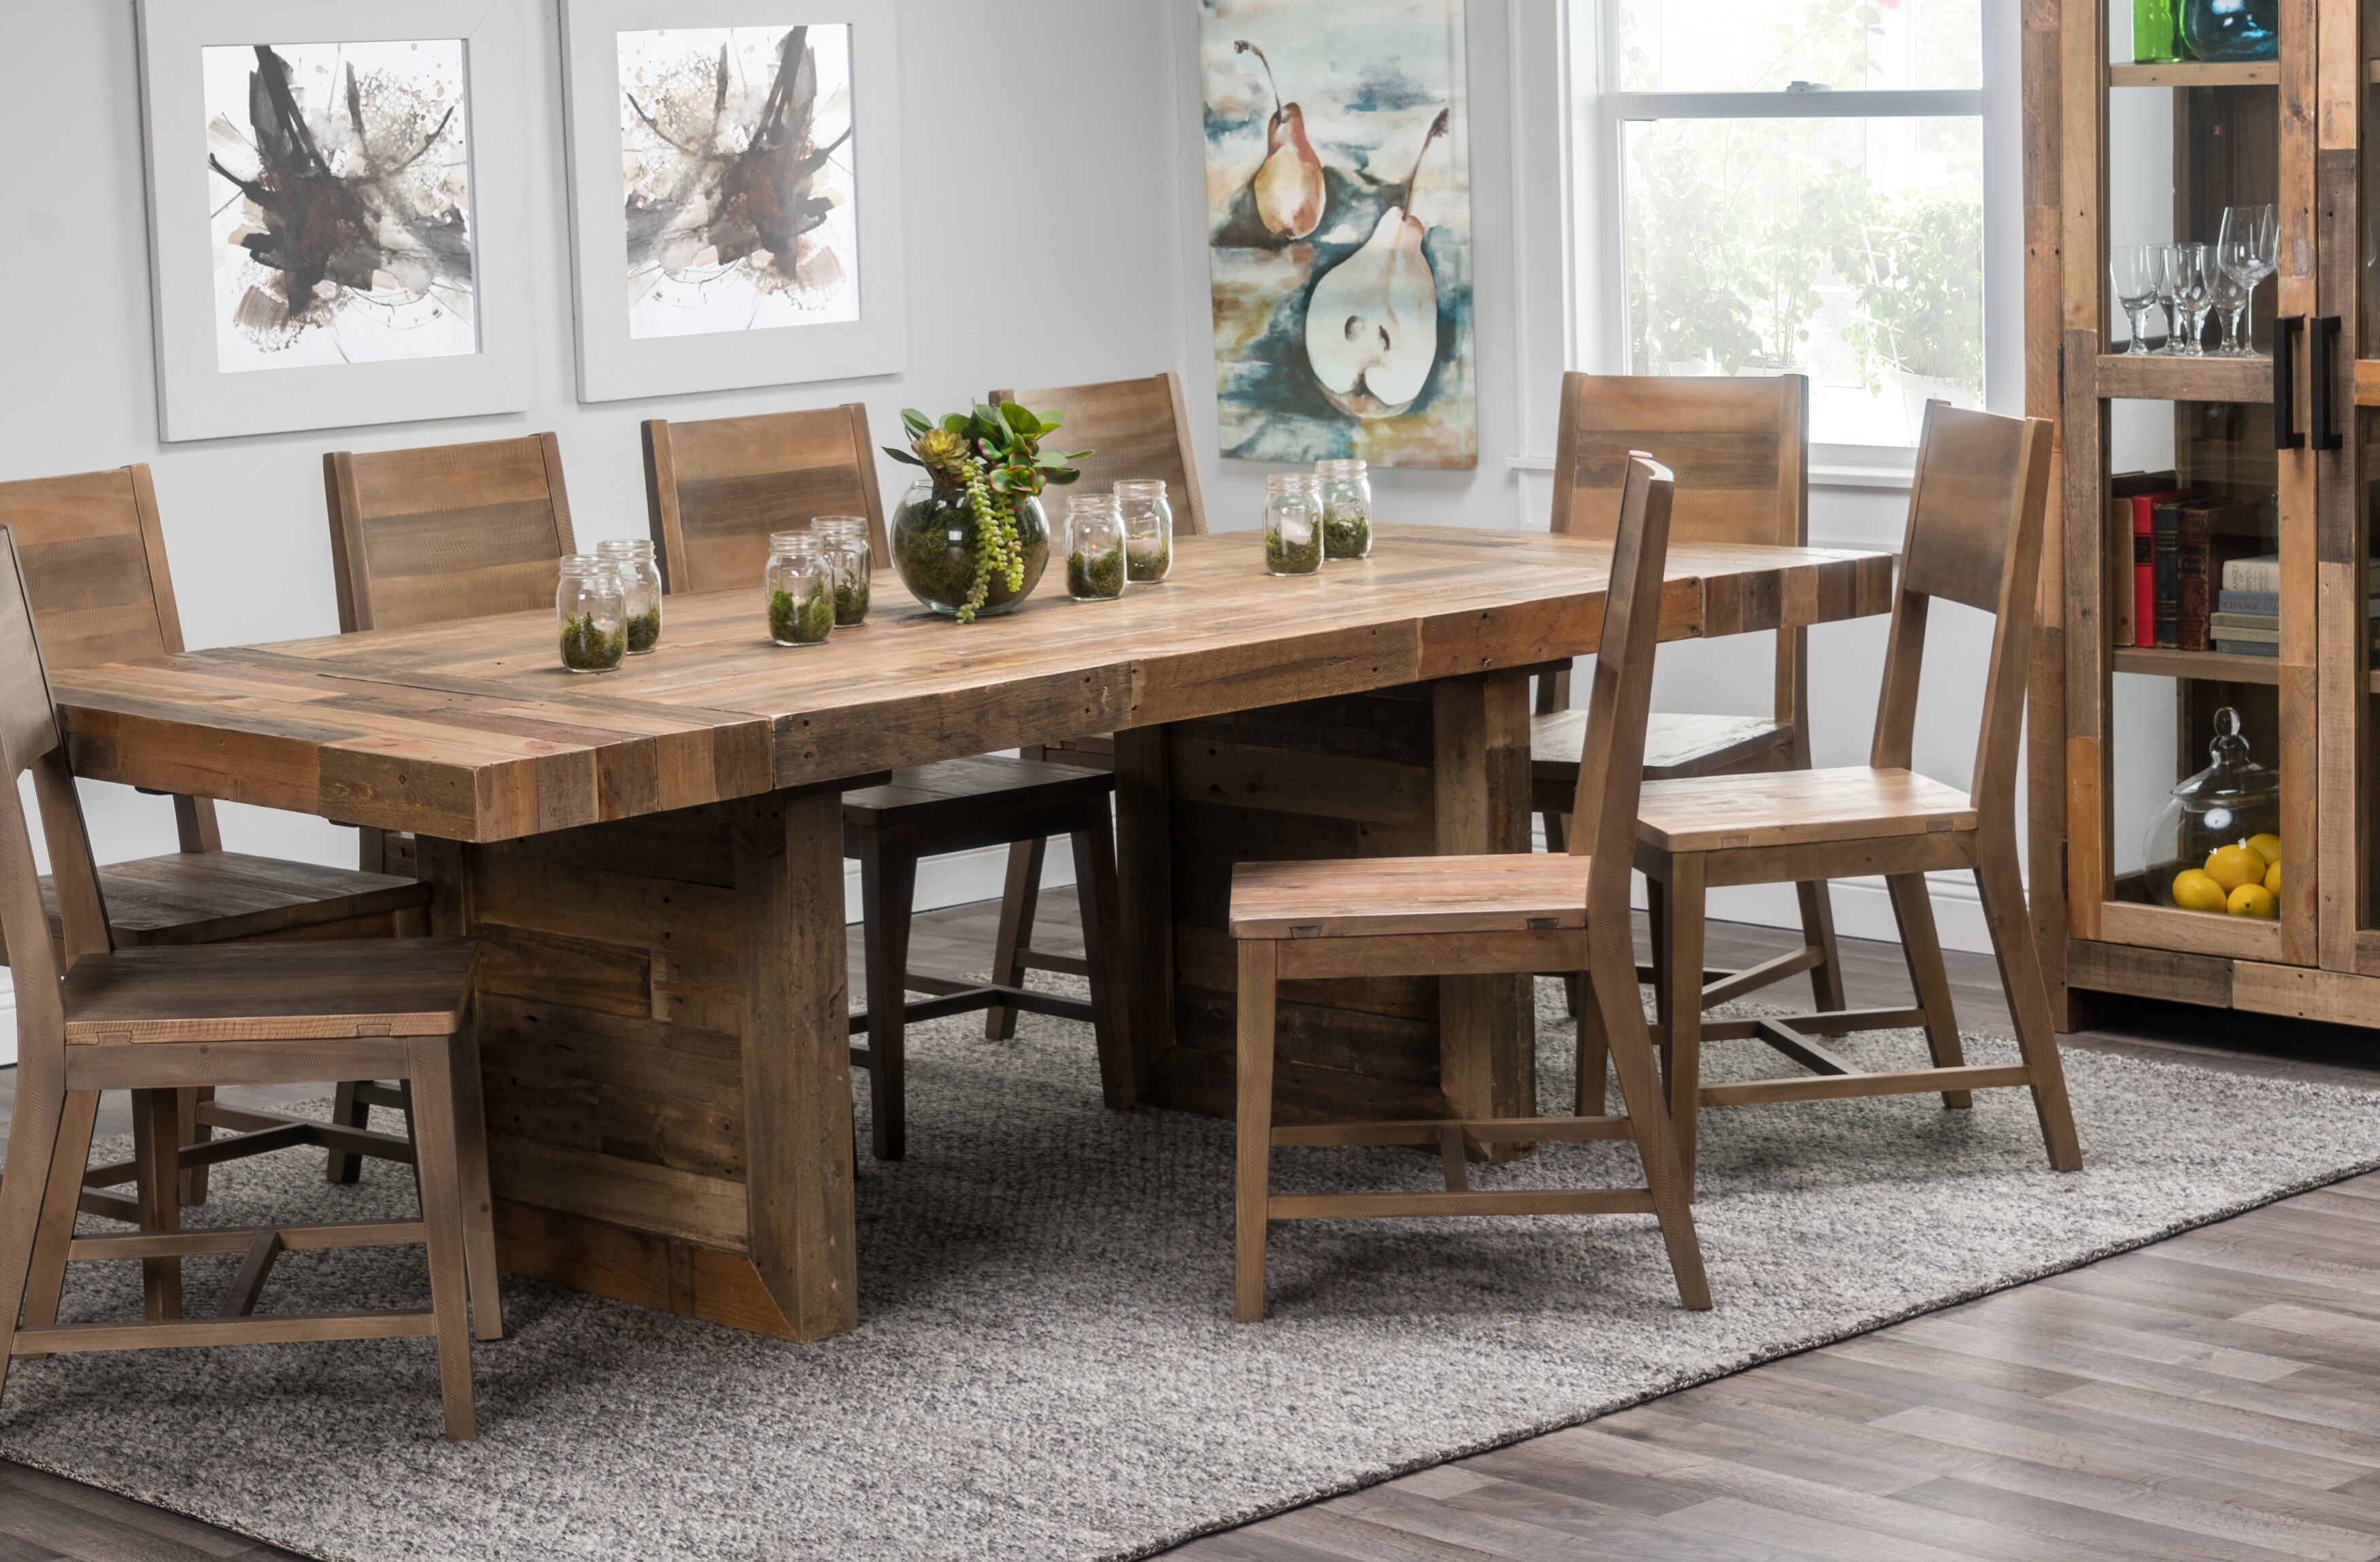 & Kosas Home Norman Extendable Solid Wood Dining Table   Birch Lane